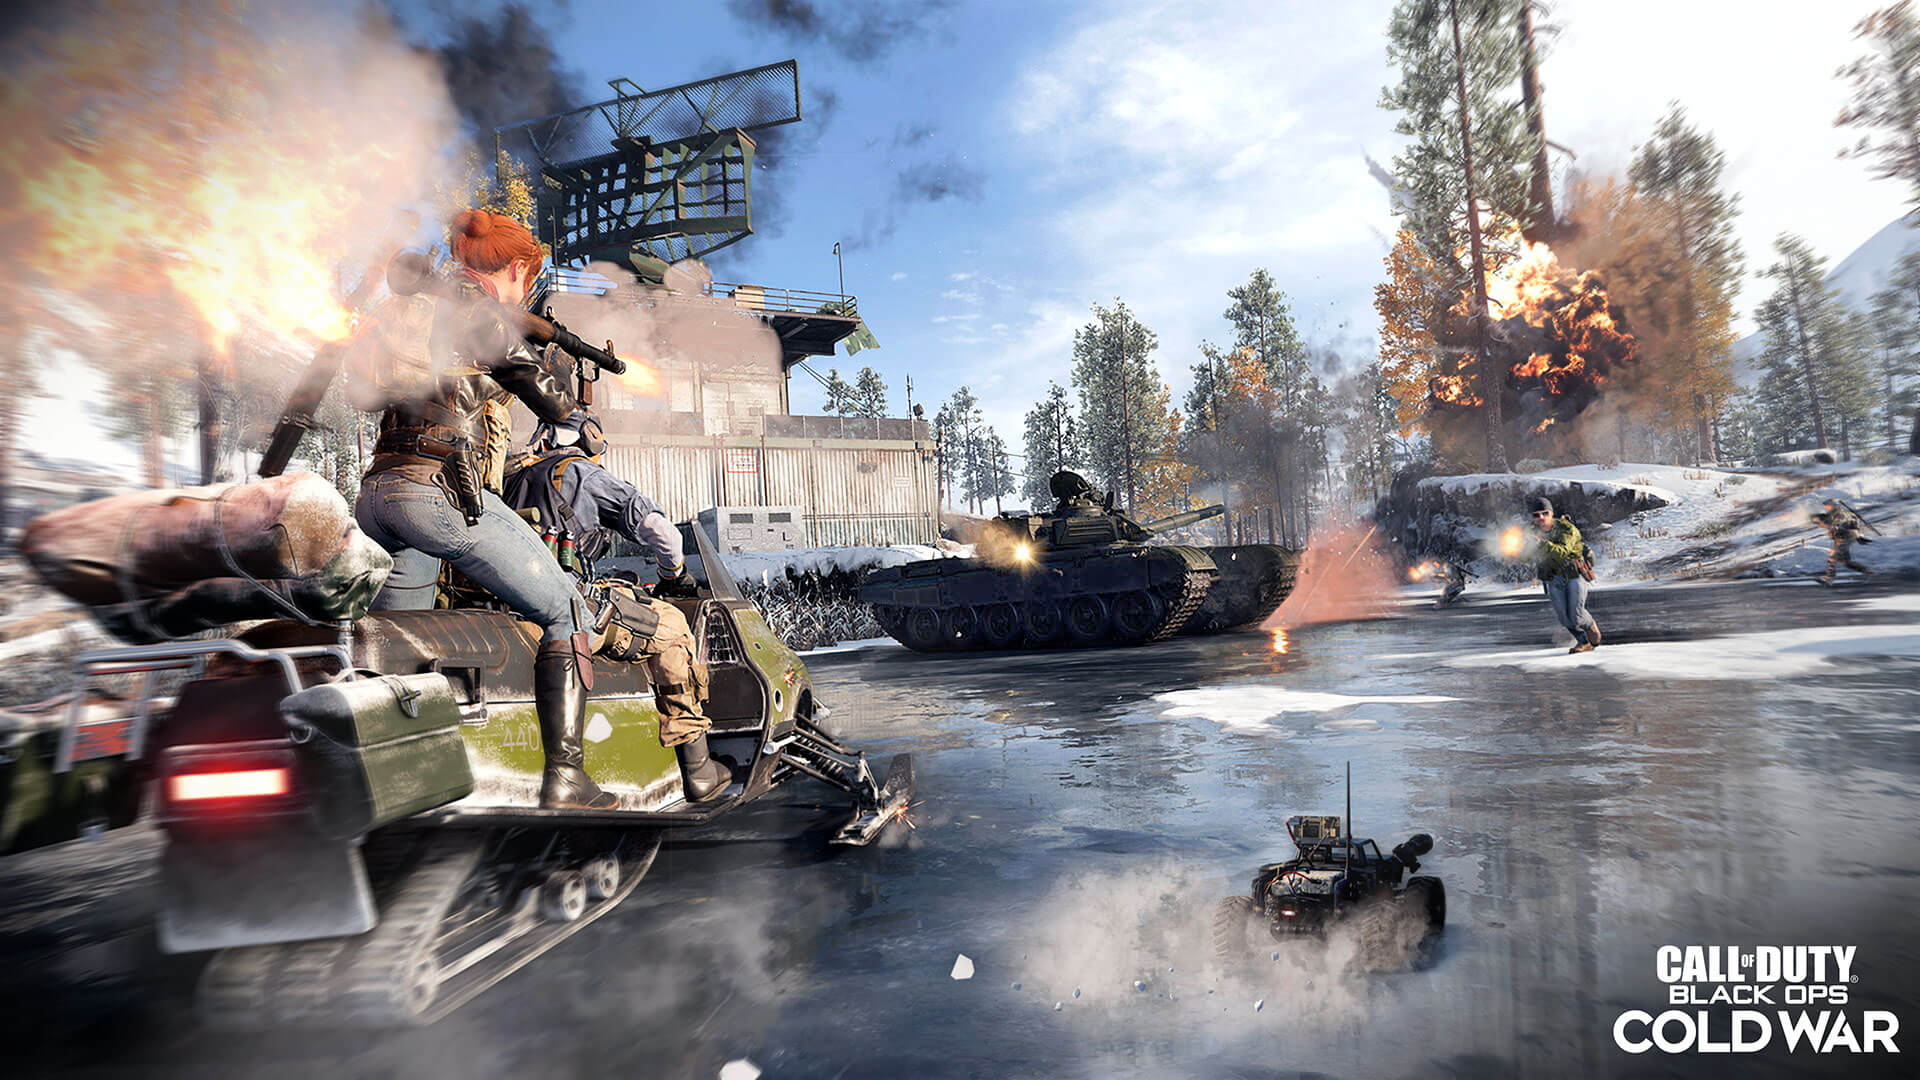 Call of Duty: Black Ops Cold War Guide - Mean Machine Achievement